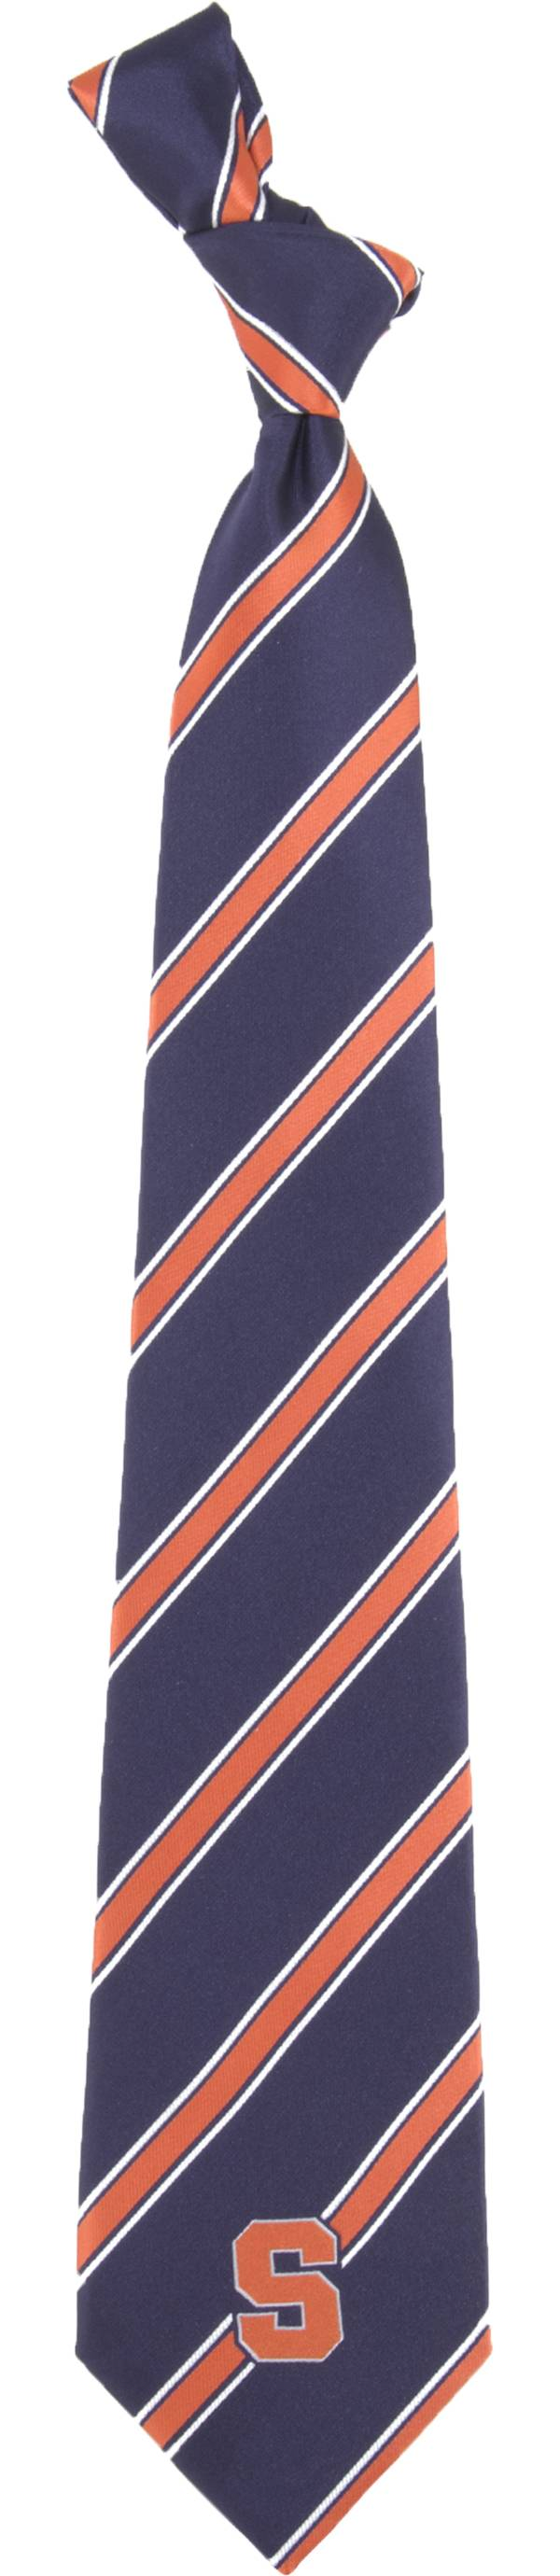 Eagles Wings Syracuse Orange Woven Poly 1 Necktie product image